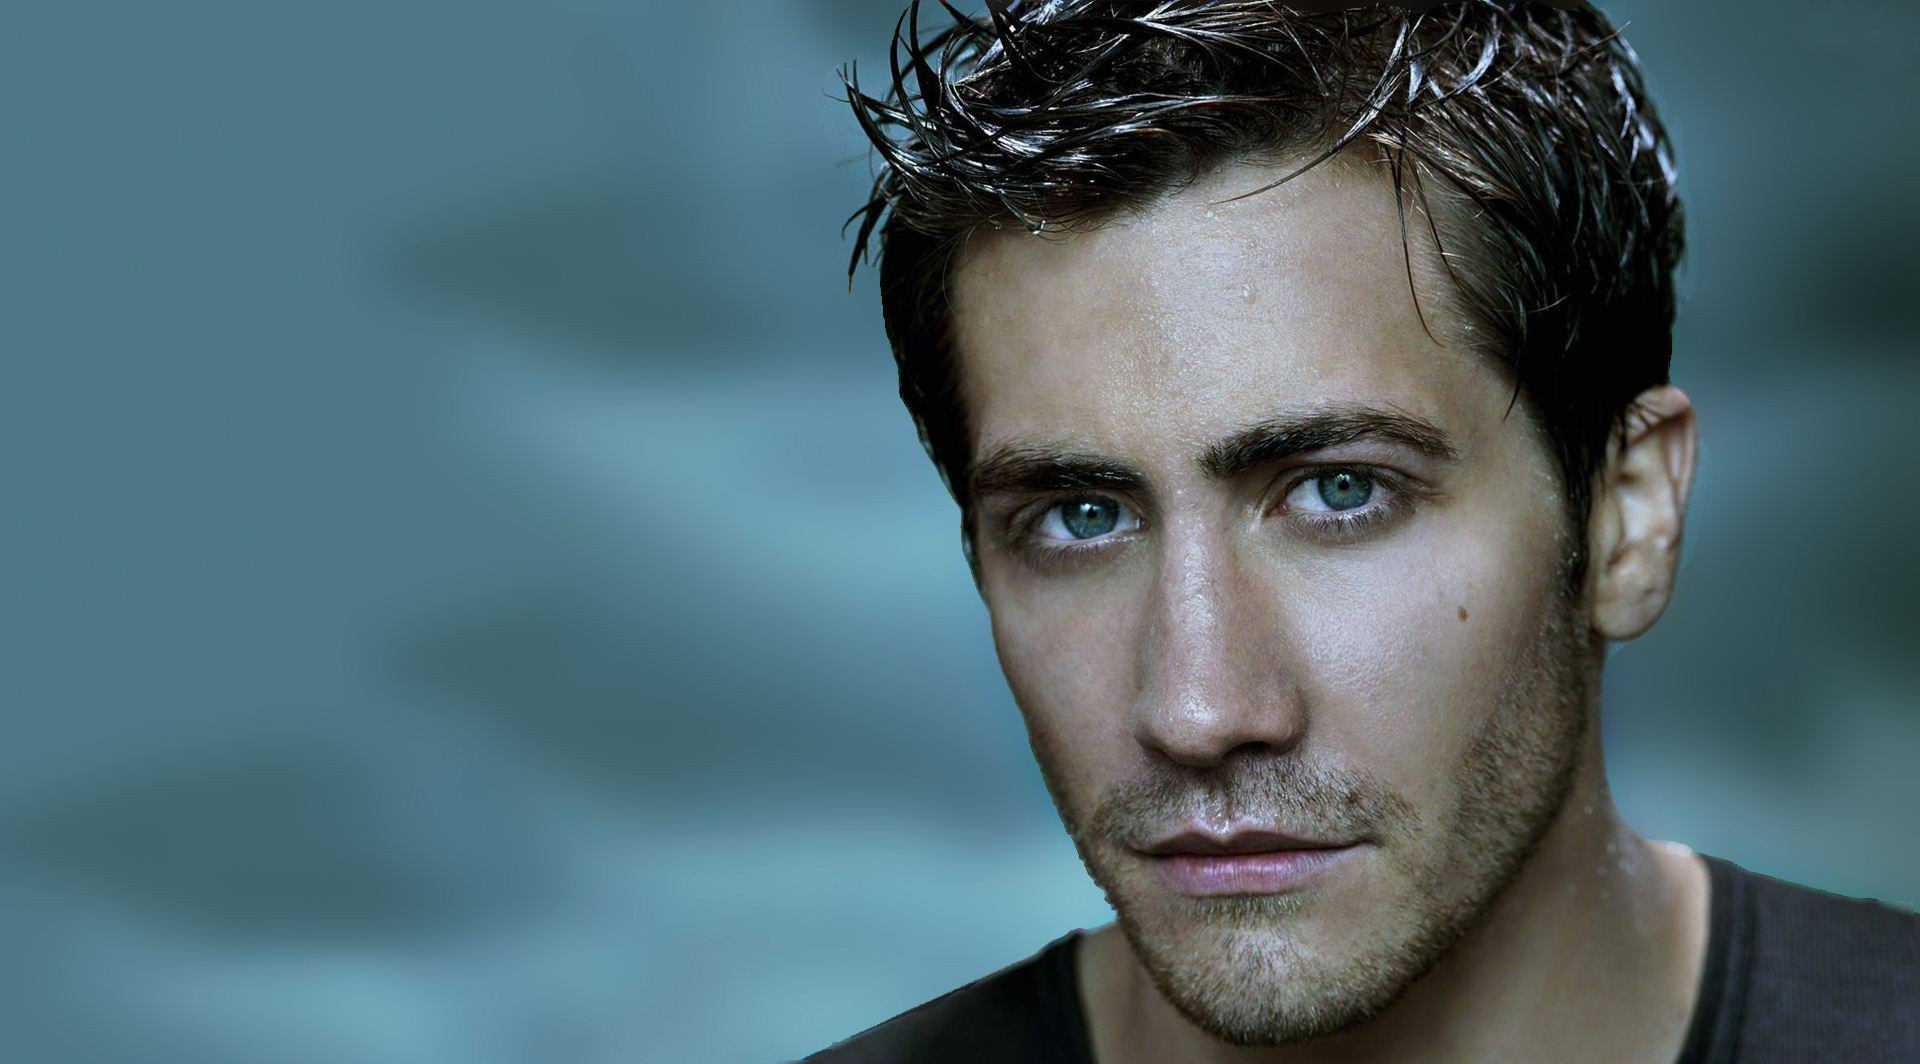 Jake Gyllenhaal Widescreen for desktop